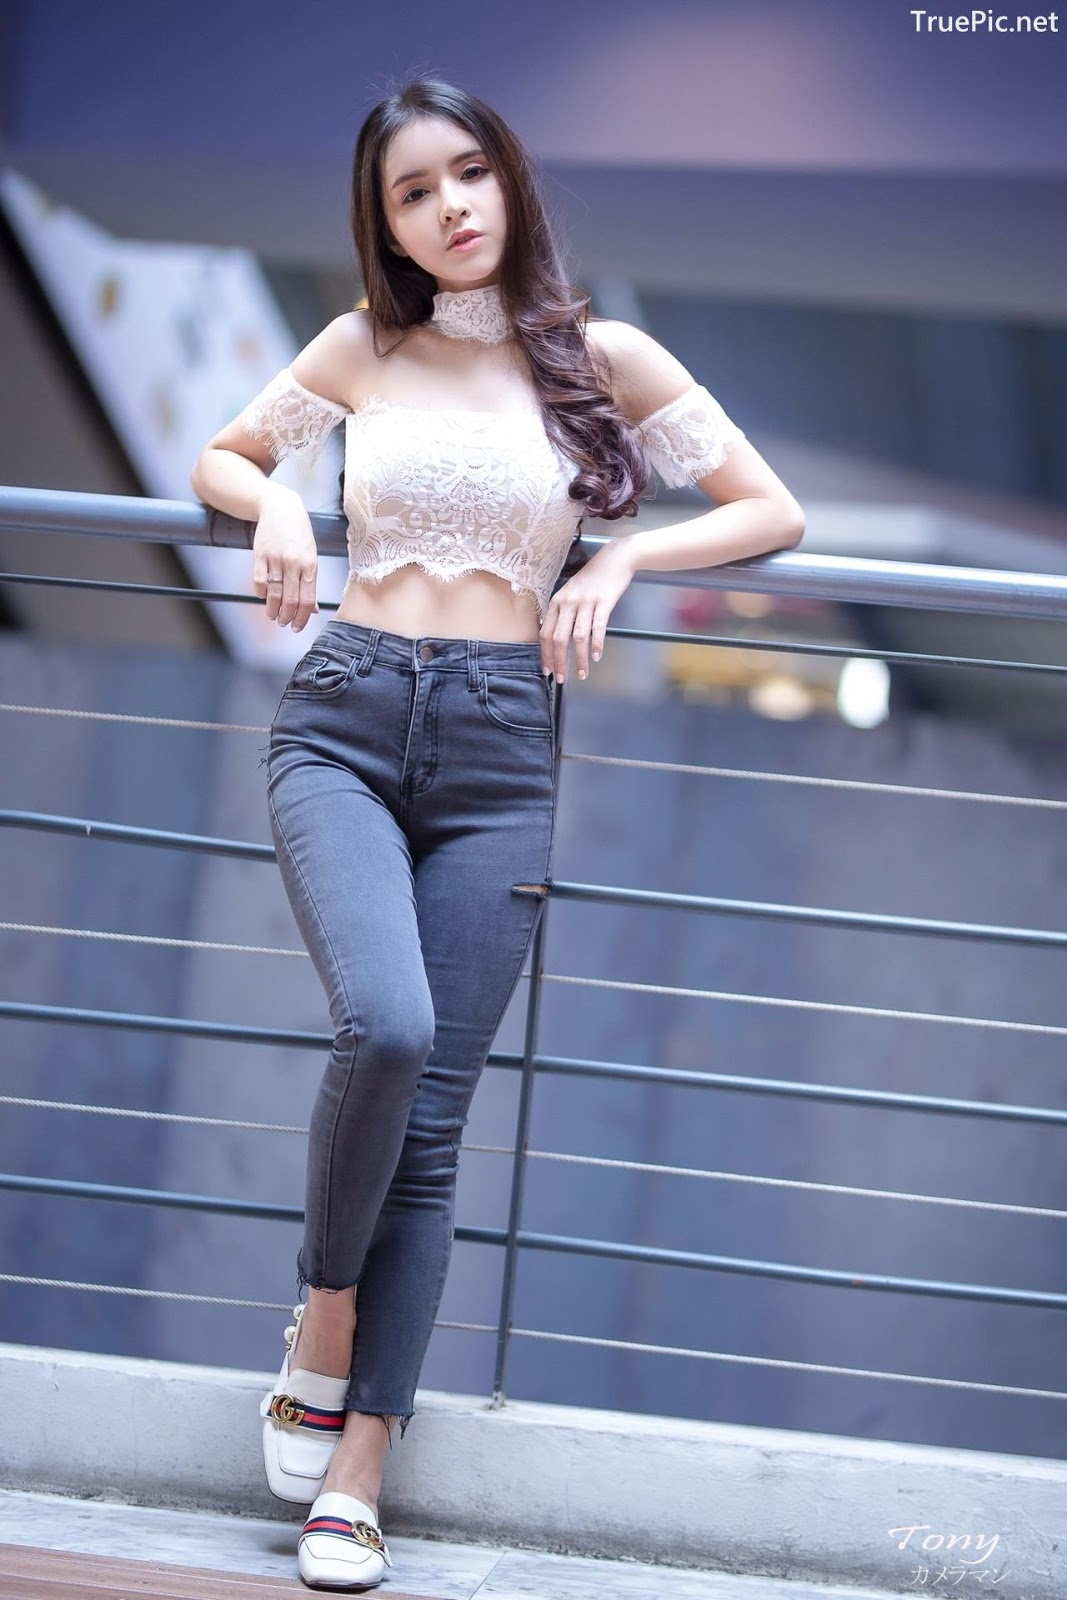 Image-Thailand-Beautiful-Model-Soithip-Palwongpaisal-Transparent-Lace-Crop-Top-And-Jean-TruePic.net- Picture-7